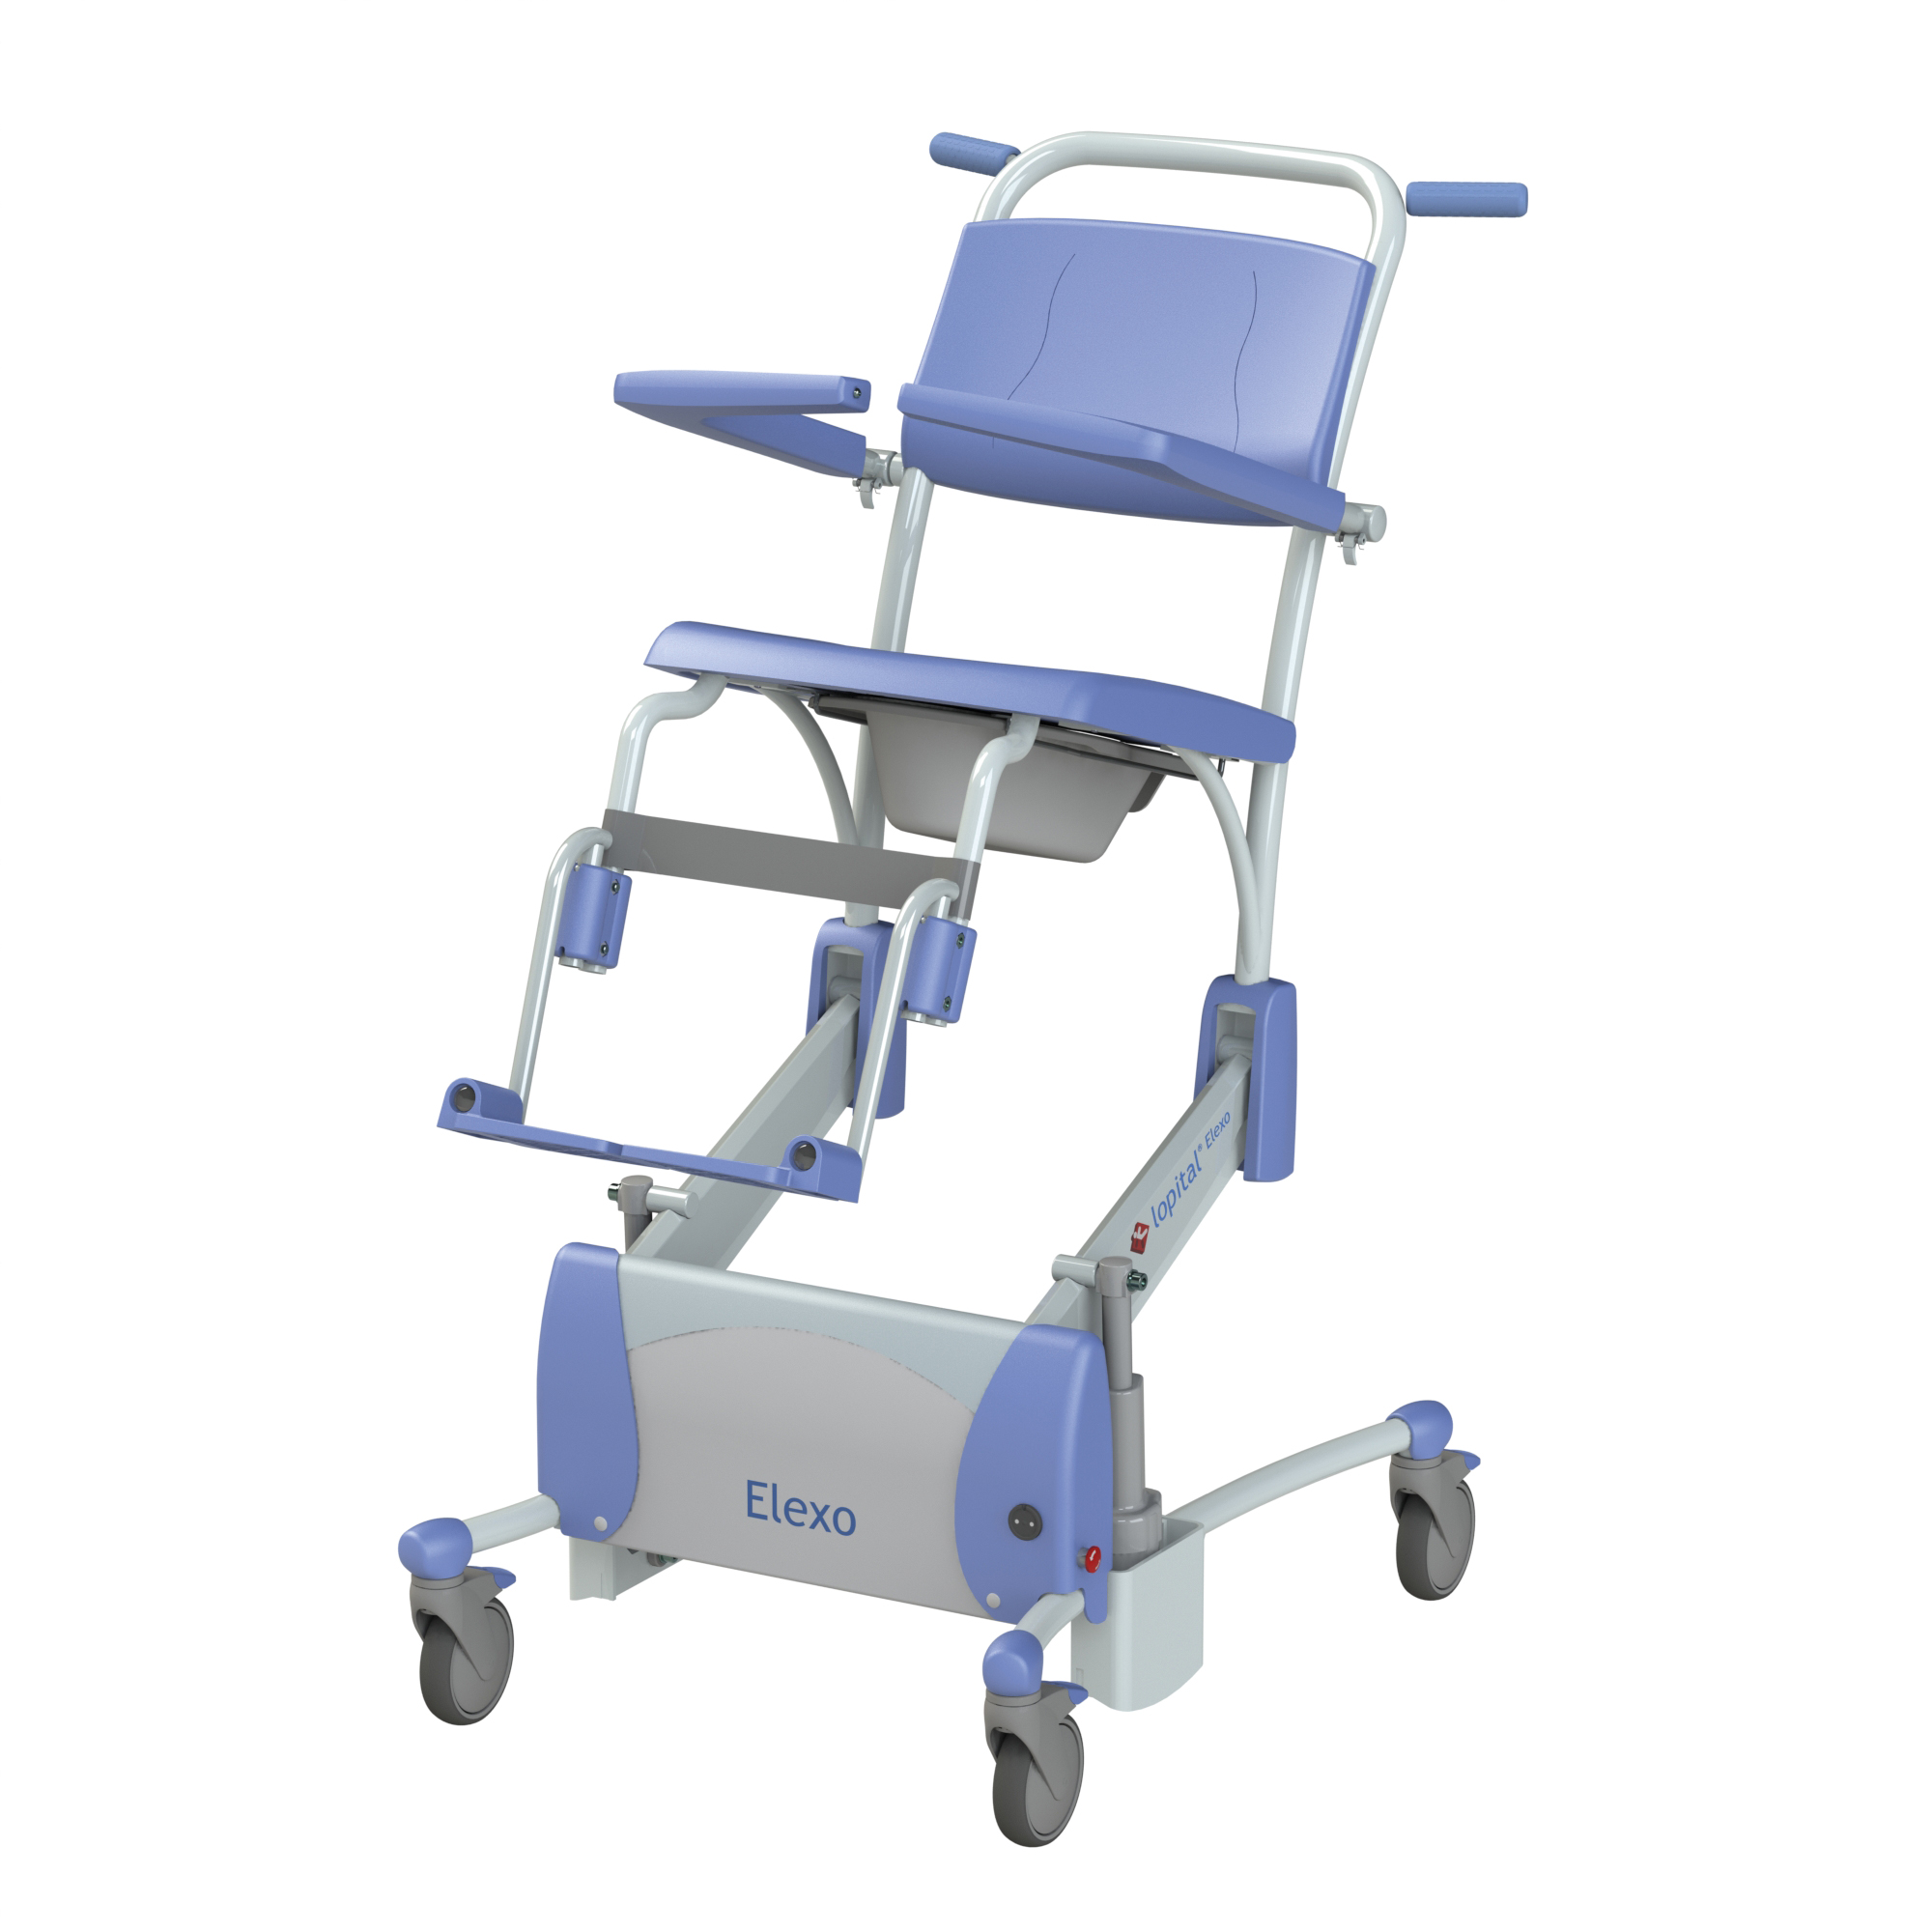 height trolley adjustable leisure orkney the swim shower conference img arts sports pickaquoy hoist in and centre poolpod